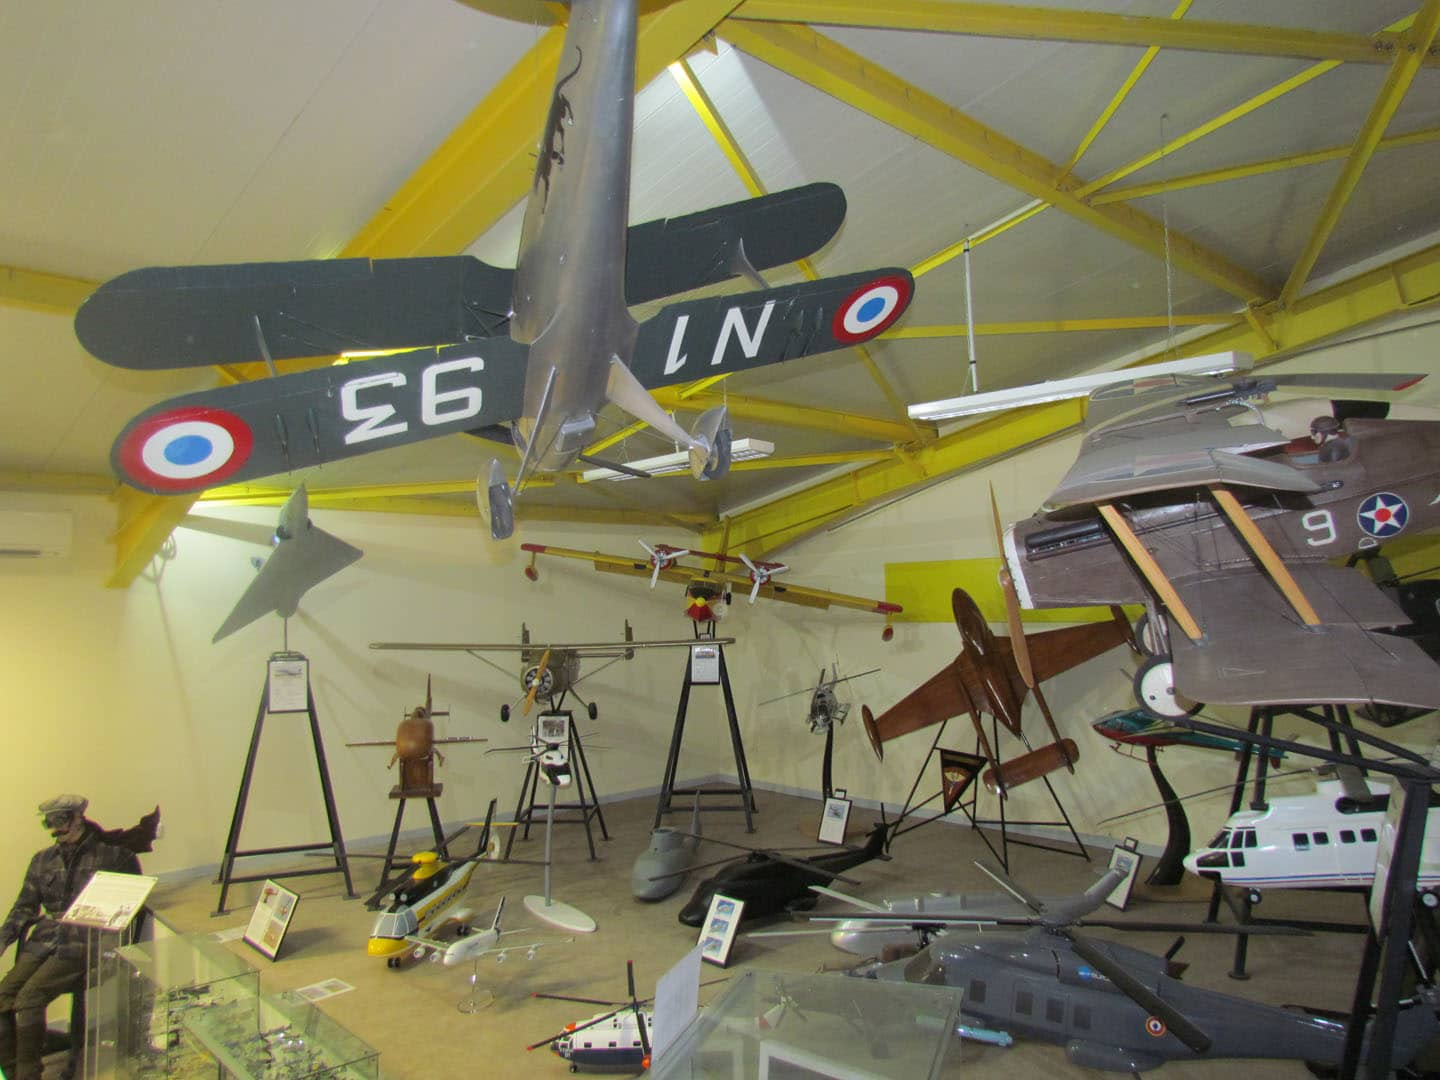 Musée aviation Saint-Victoret